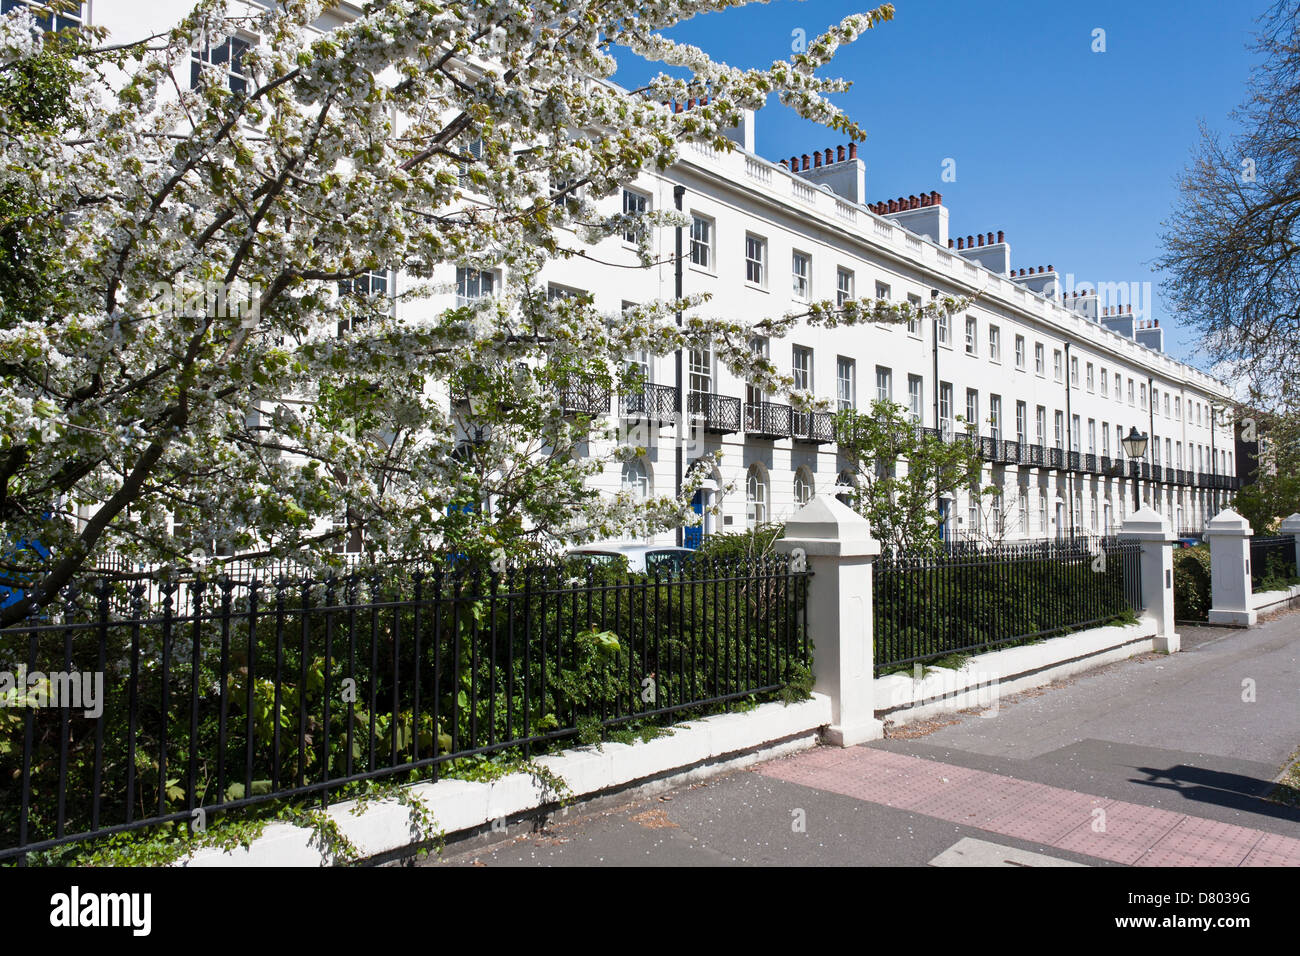 Albion Terrace in Reading, Berkshire, a Grade II listed building. England, GB, UK. - Stock Image